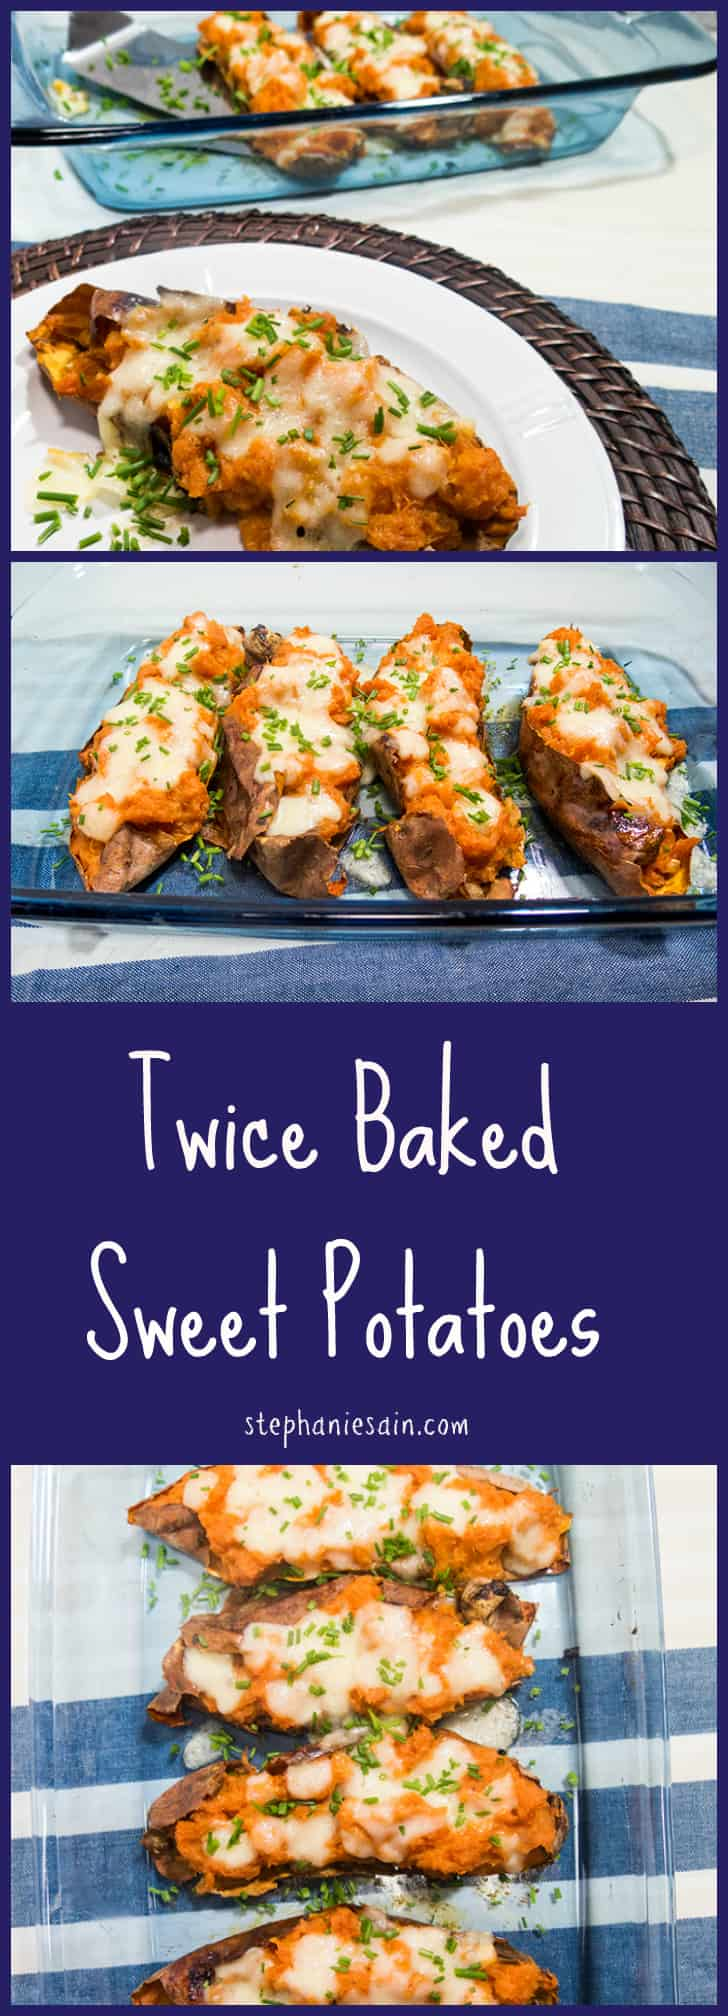 Twice Baked Sweet Potatoes are a healthy, tasty option that are great with almost anything. Vegetarian and Gluten Free.